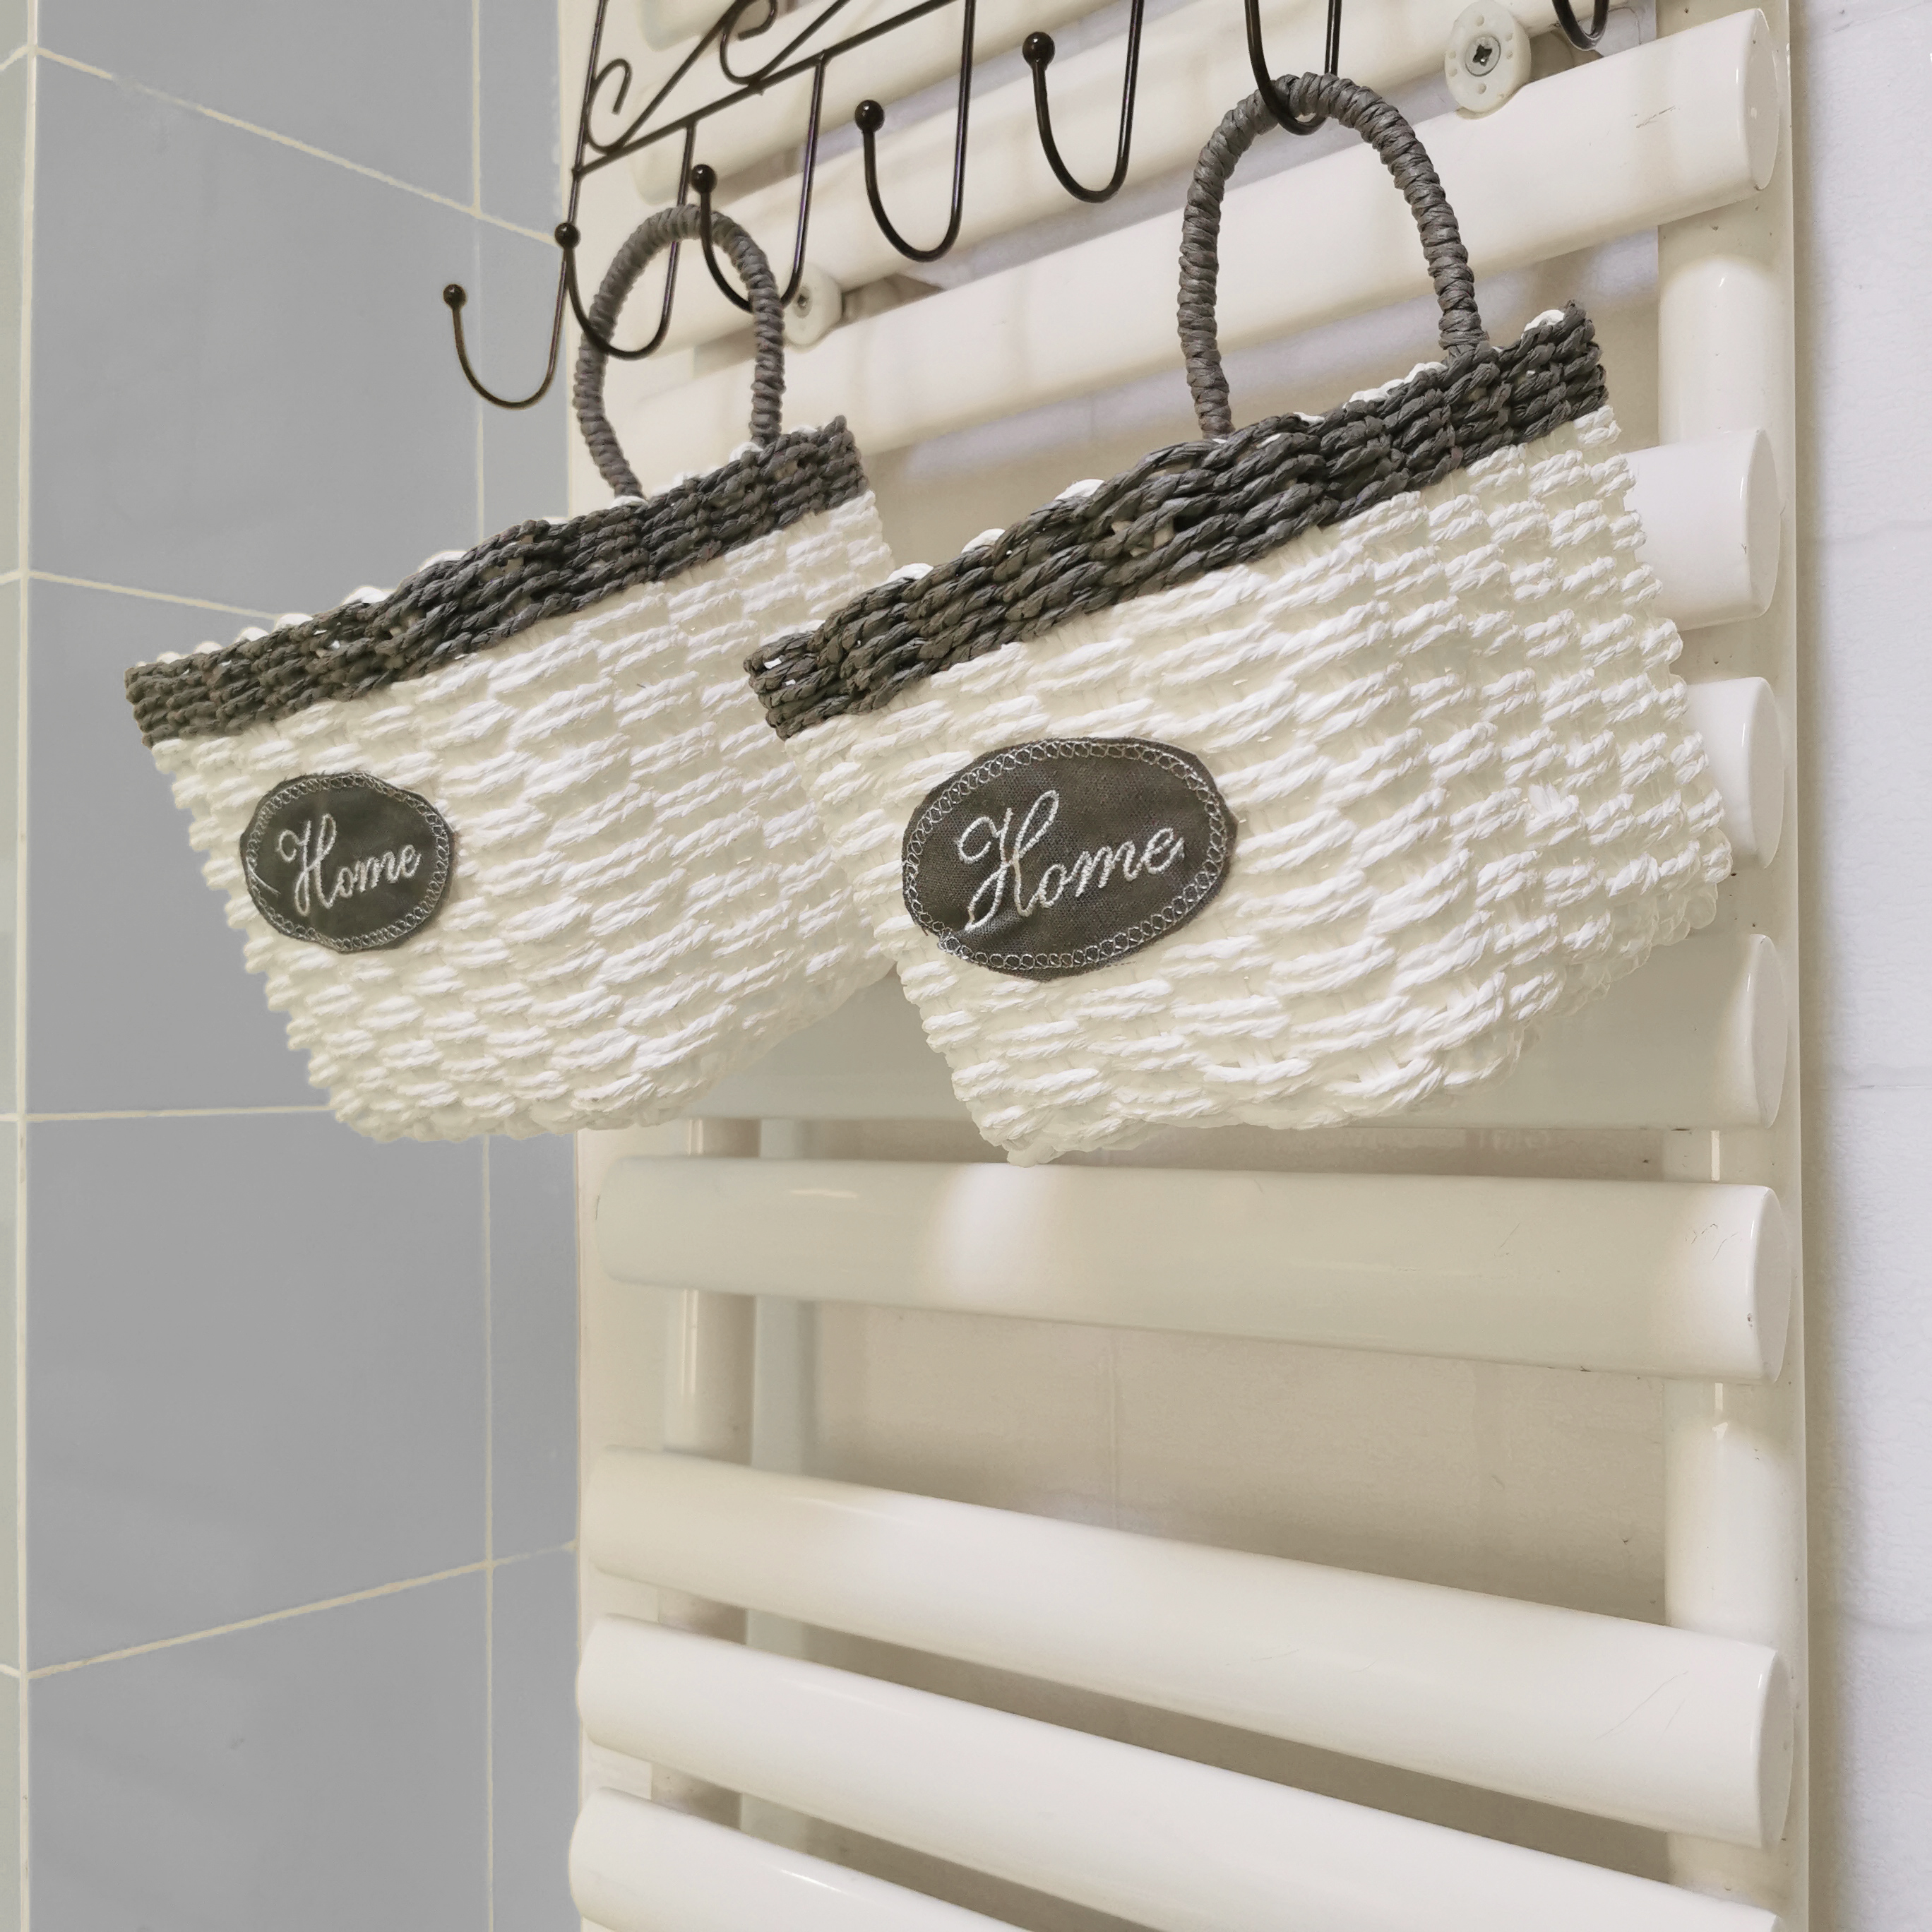 Wall Hanging Storage Baskets Set[2-Pack]